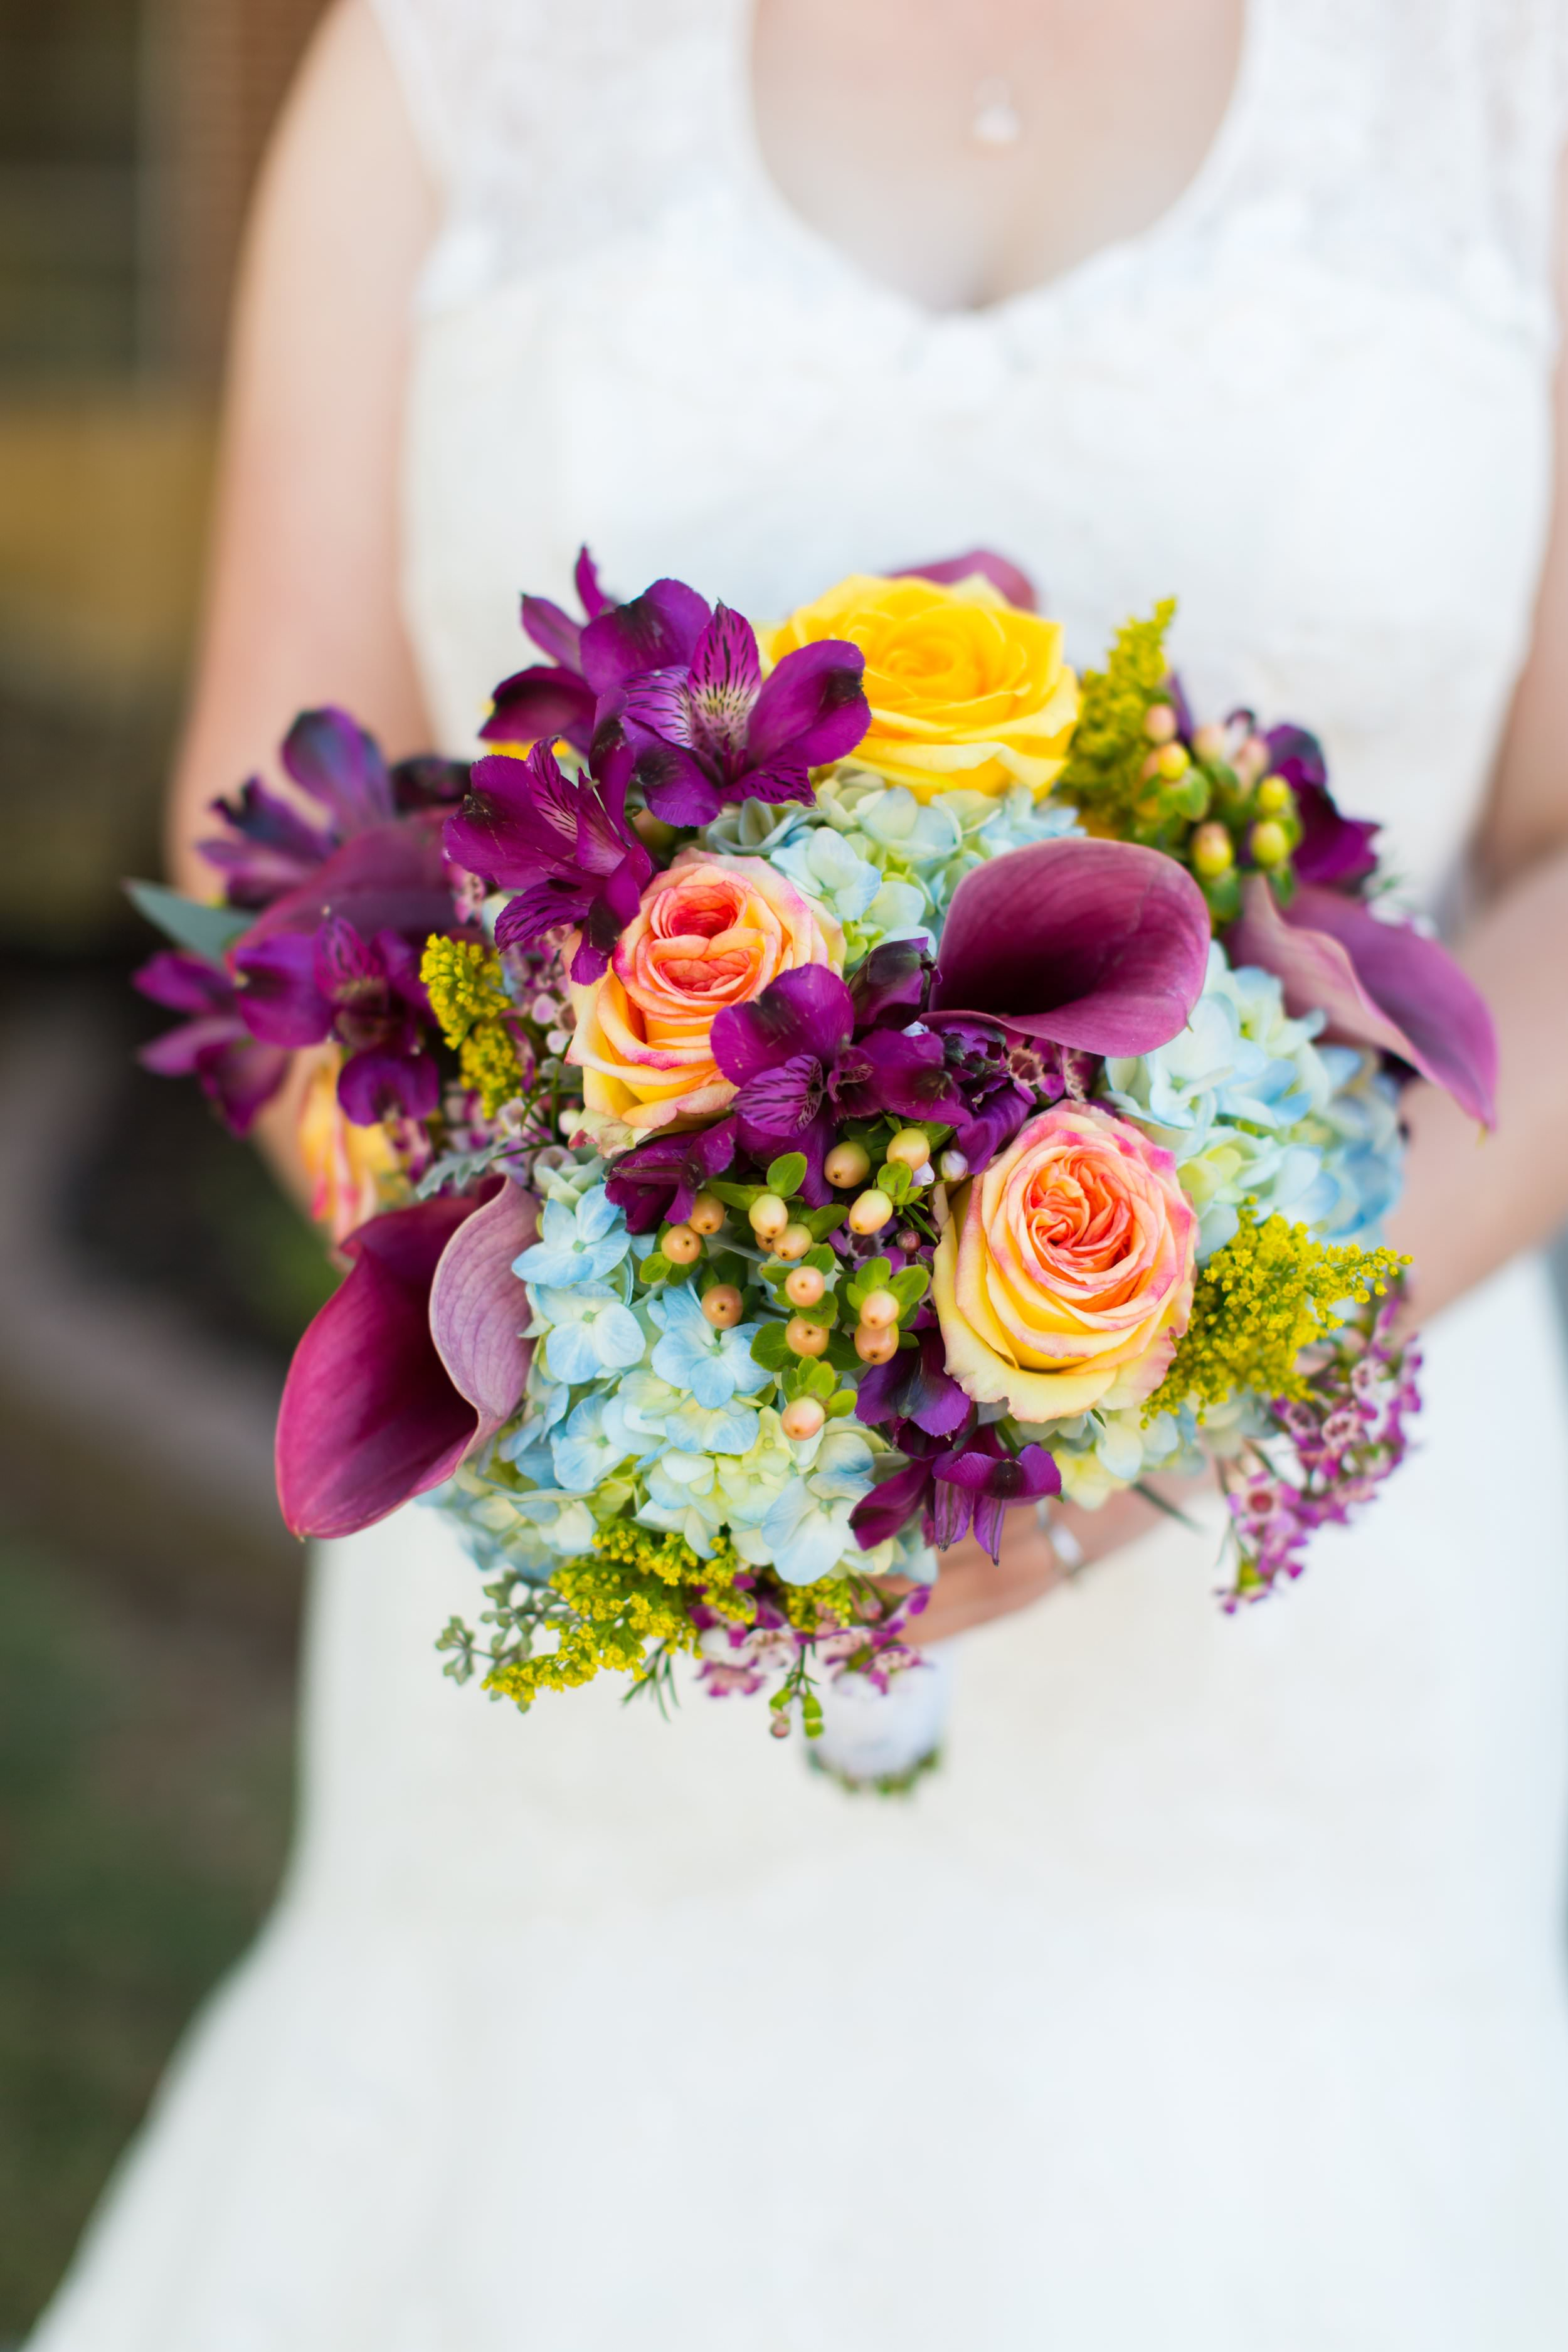 Katie's vibrant bouquet by  Atlanta florist Acorn Home & Garden  was the perfect fit for her plum and gold wedding. To view more from Andy and Katie's  Powder Springs wedding, click here .